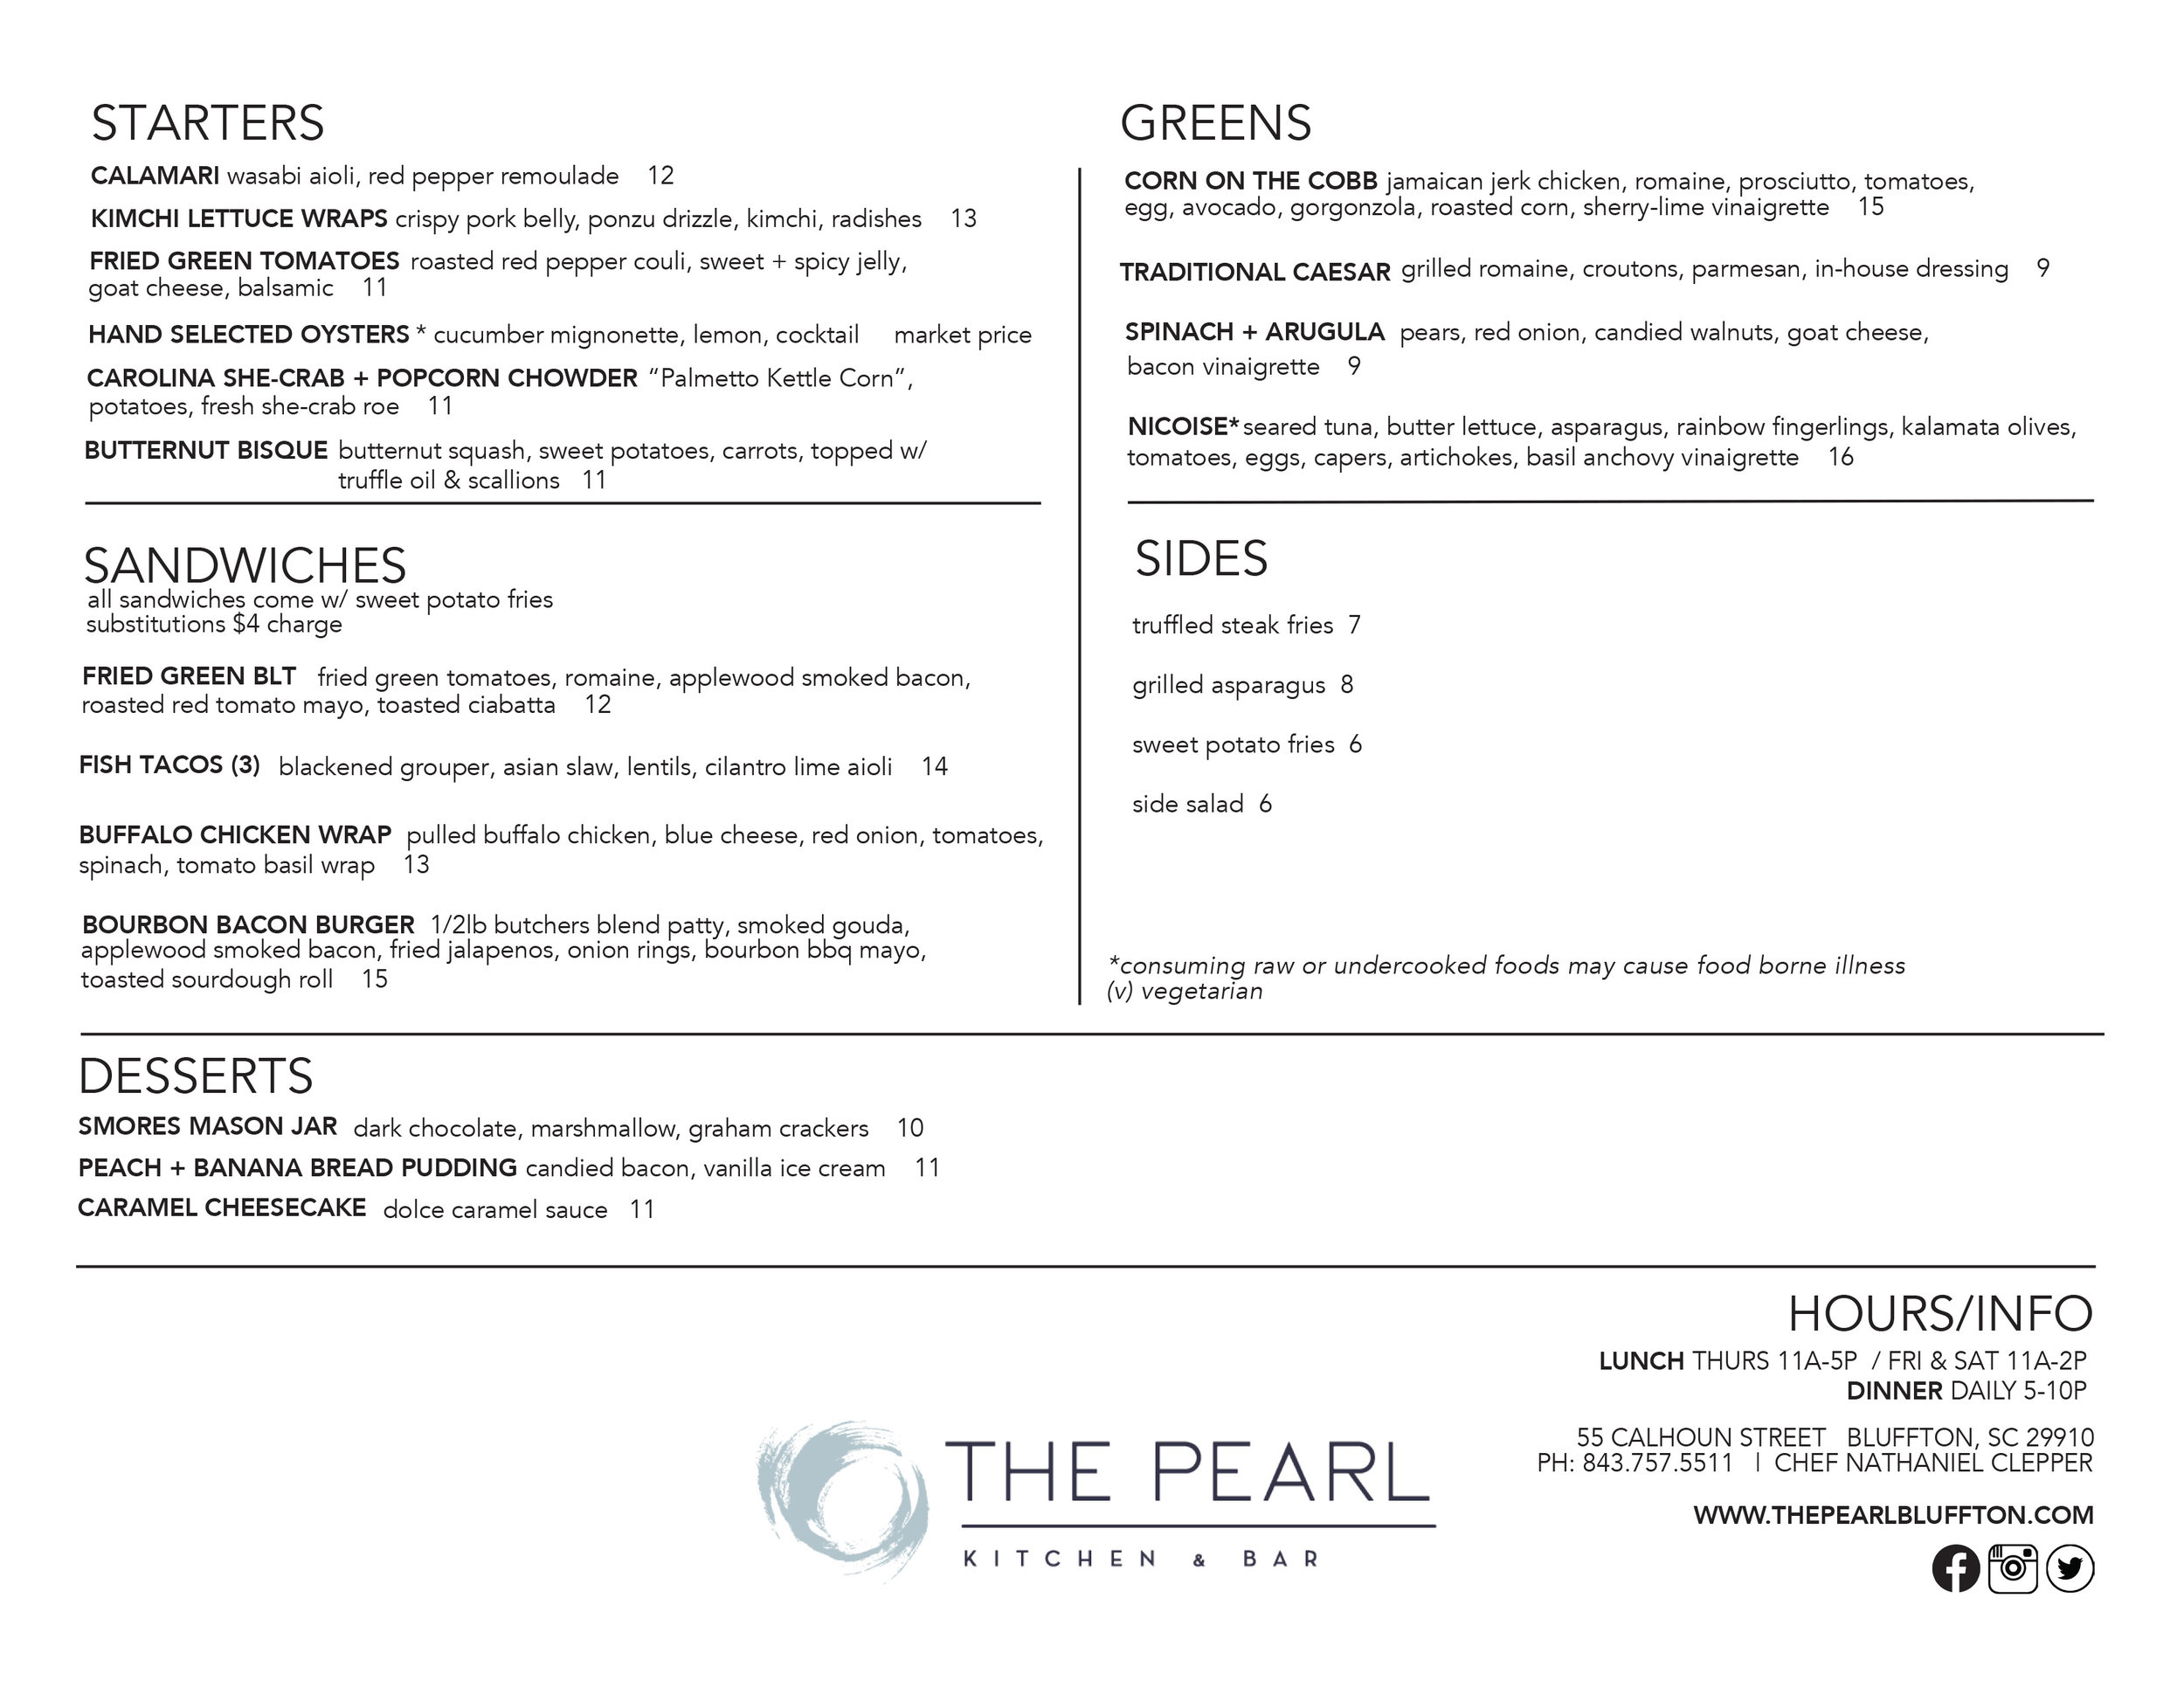 1 - PEARL LUNCH-3-8-2019.jpg